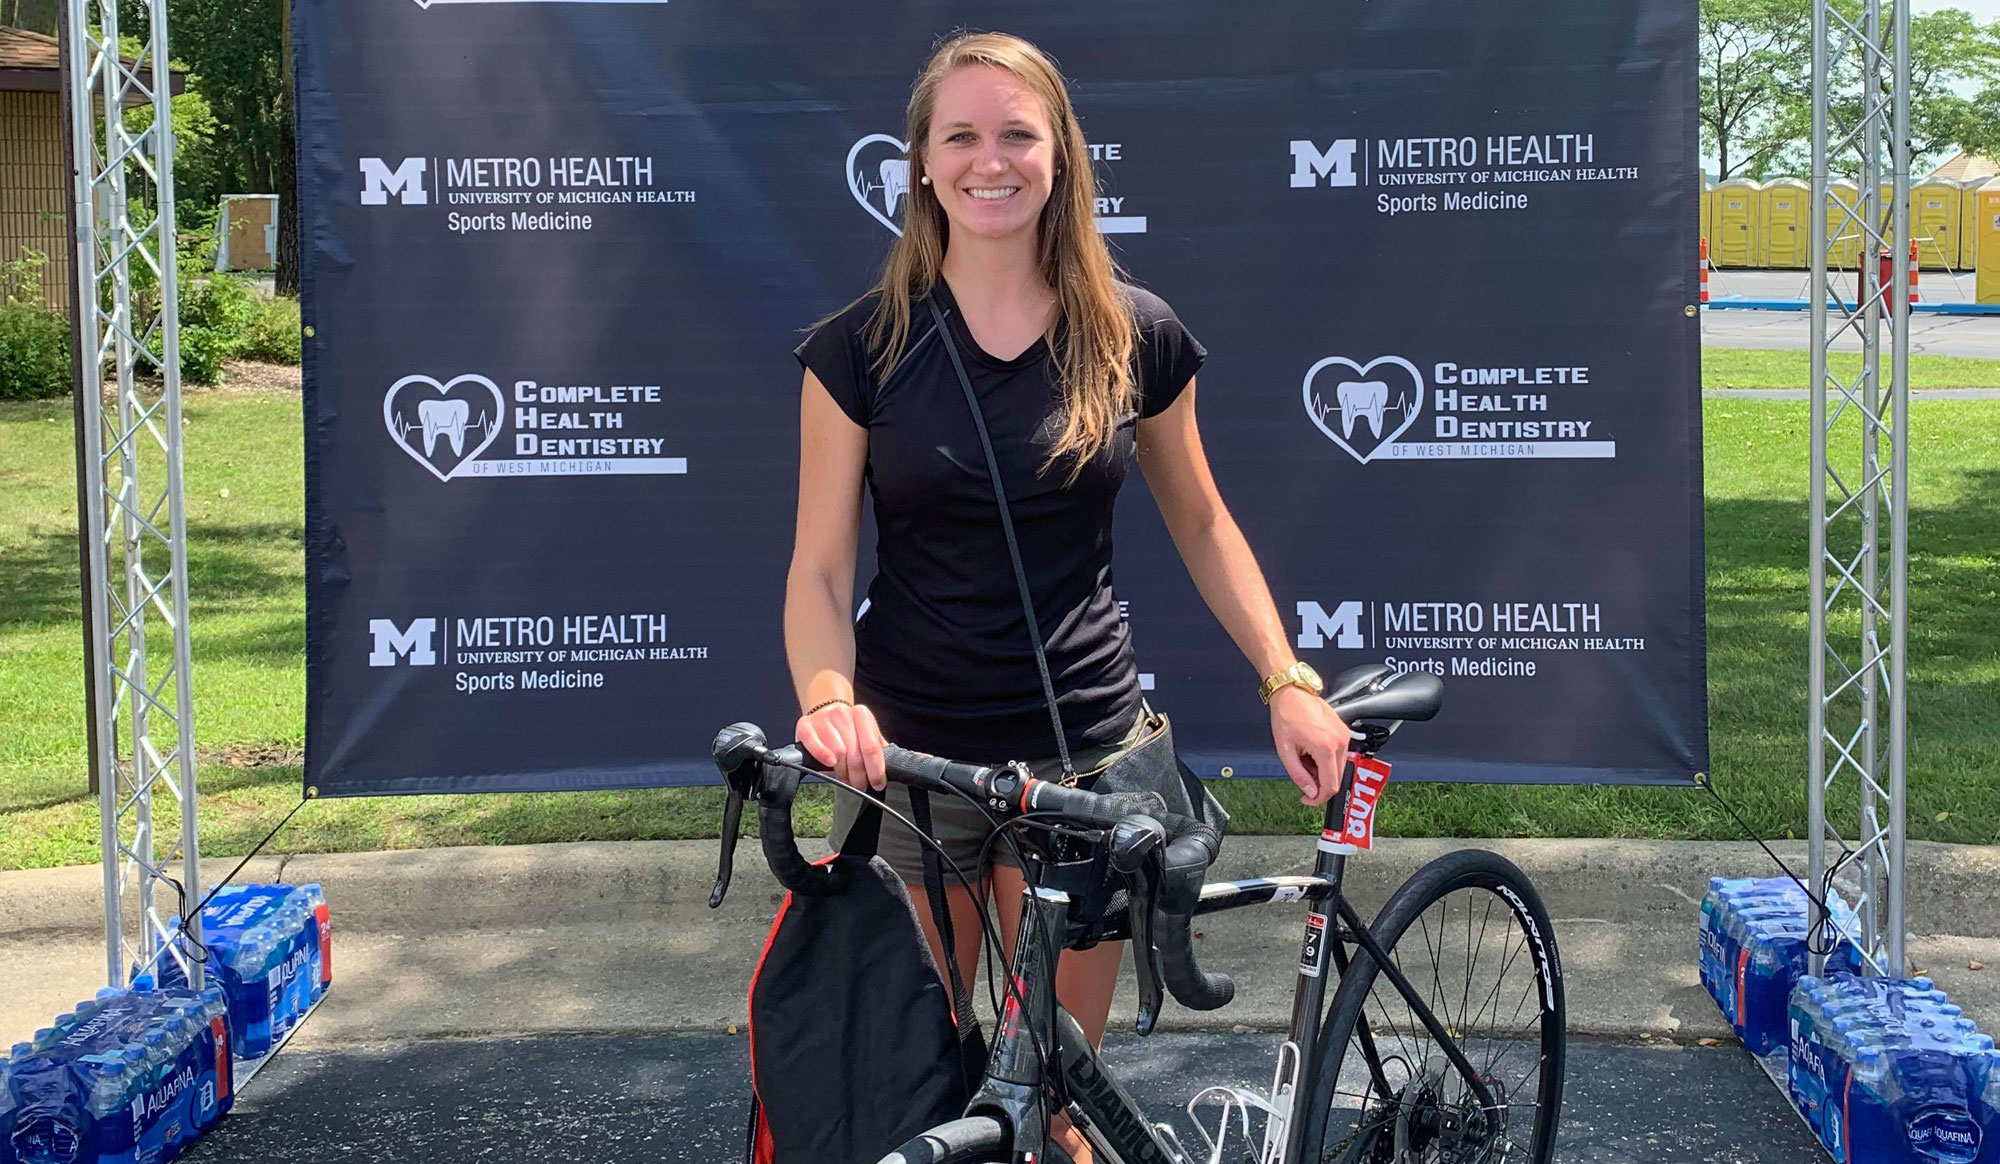 <b>I am a TITAN</b>: How a shortened course couldn't stop one full-distance triathlete from finishing